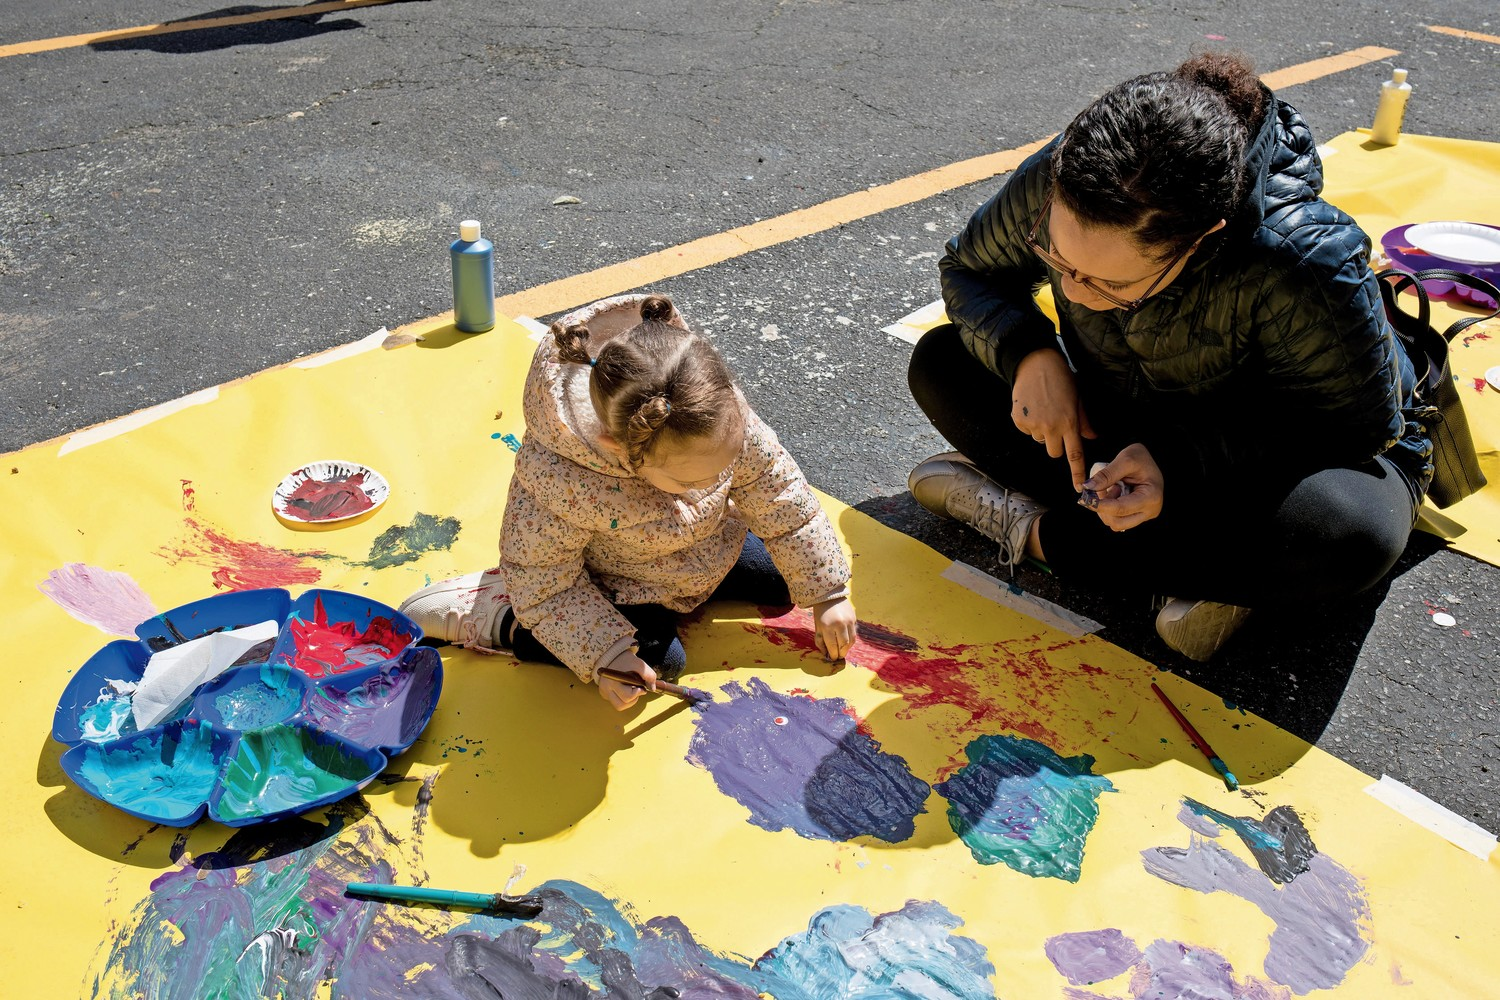 At an Earth Day celebration in Kingsbridge, Lilly Quero paints while her mother, Ilyana Sori, watches.